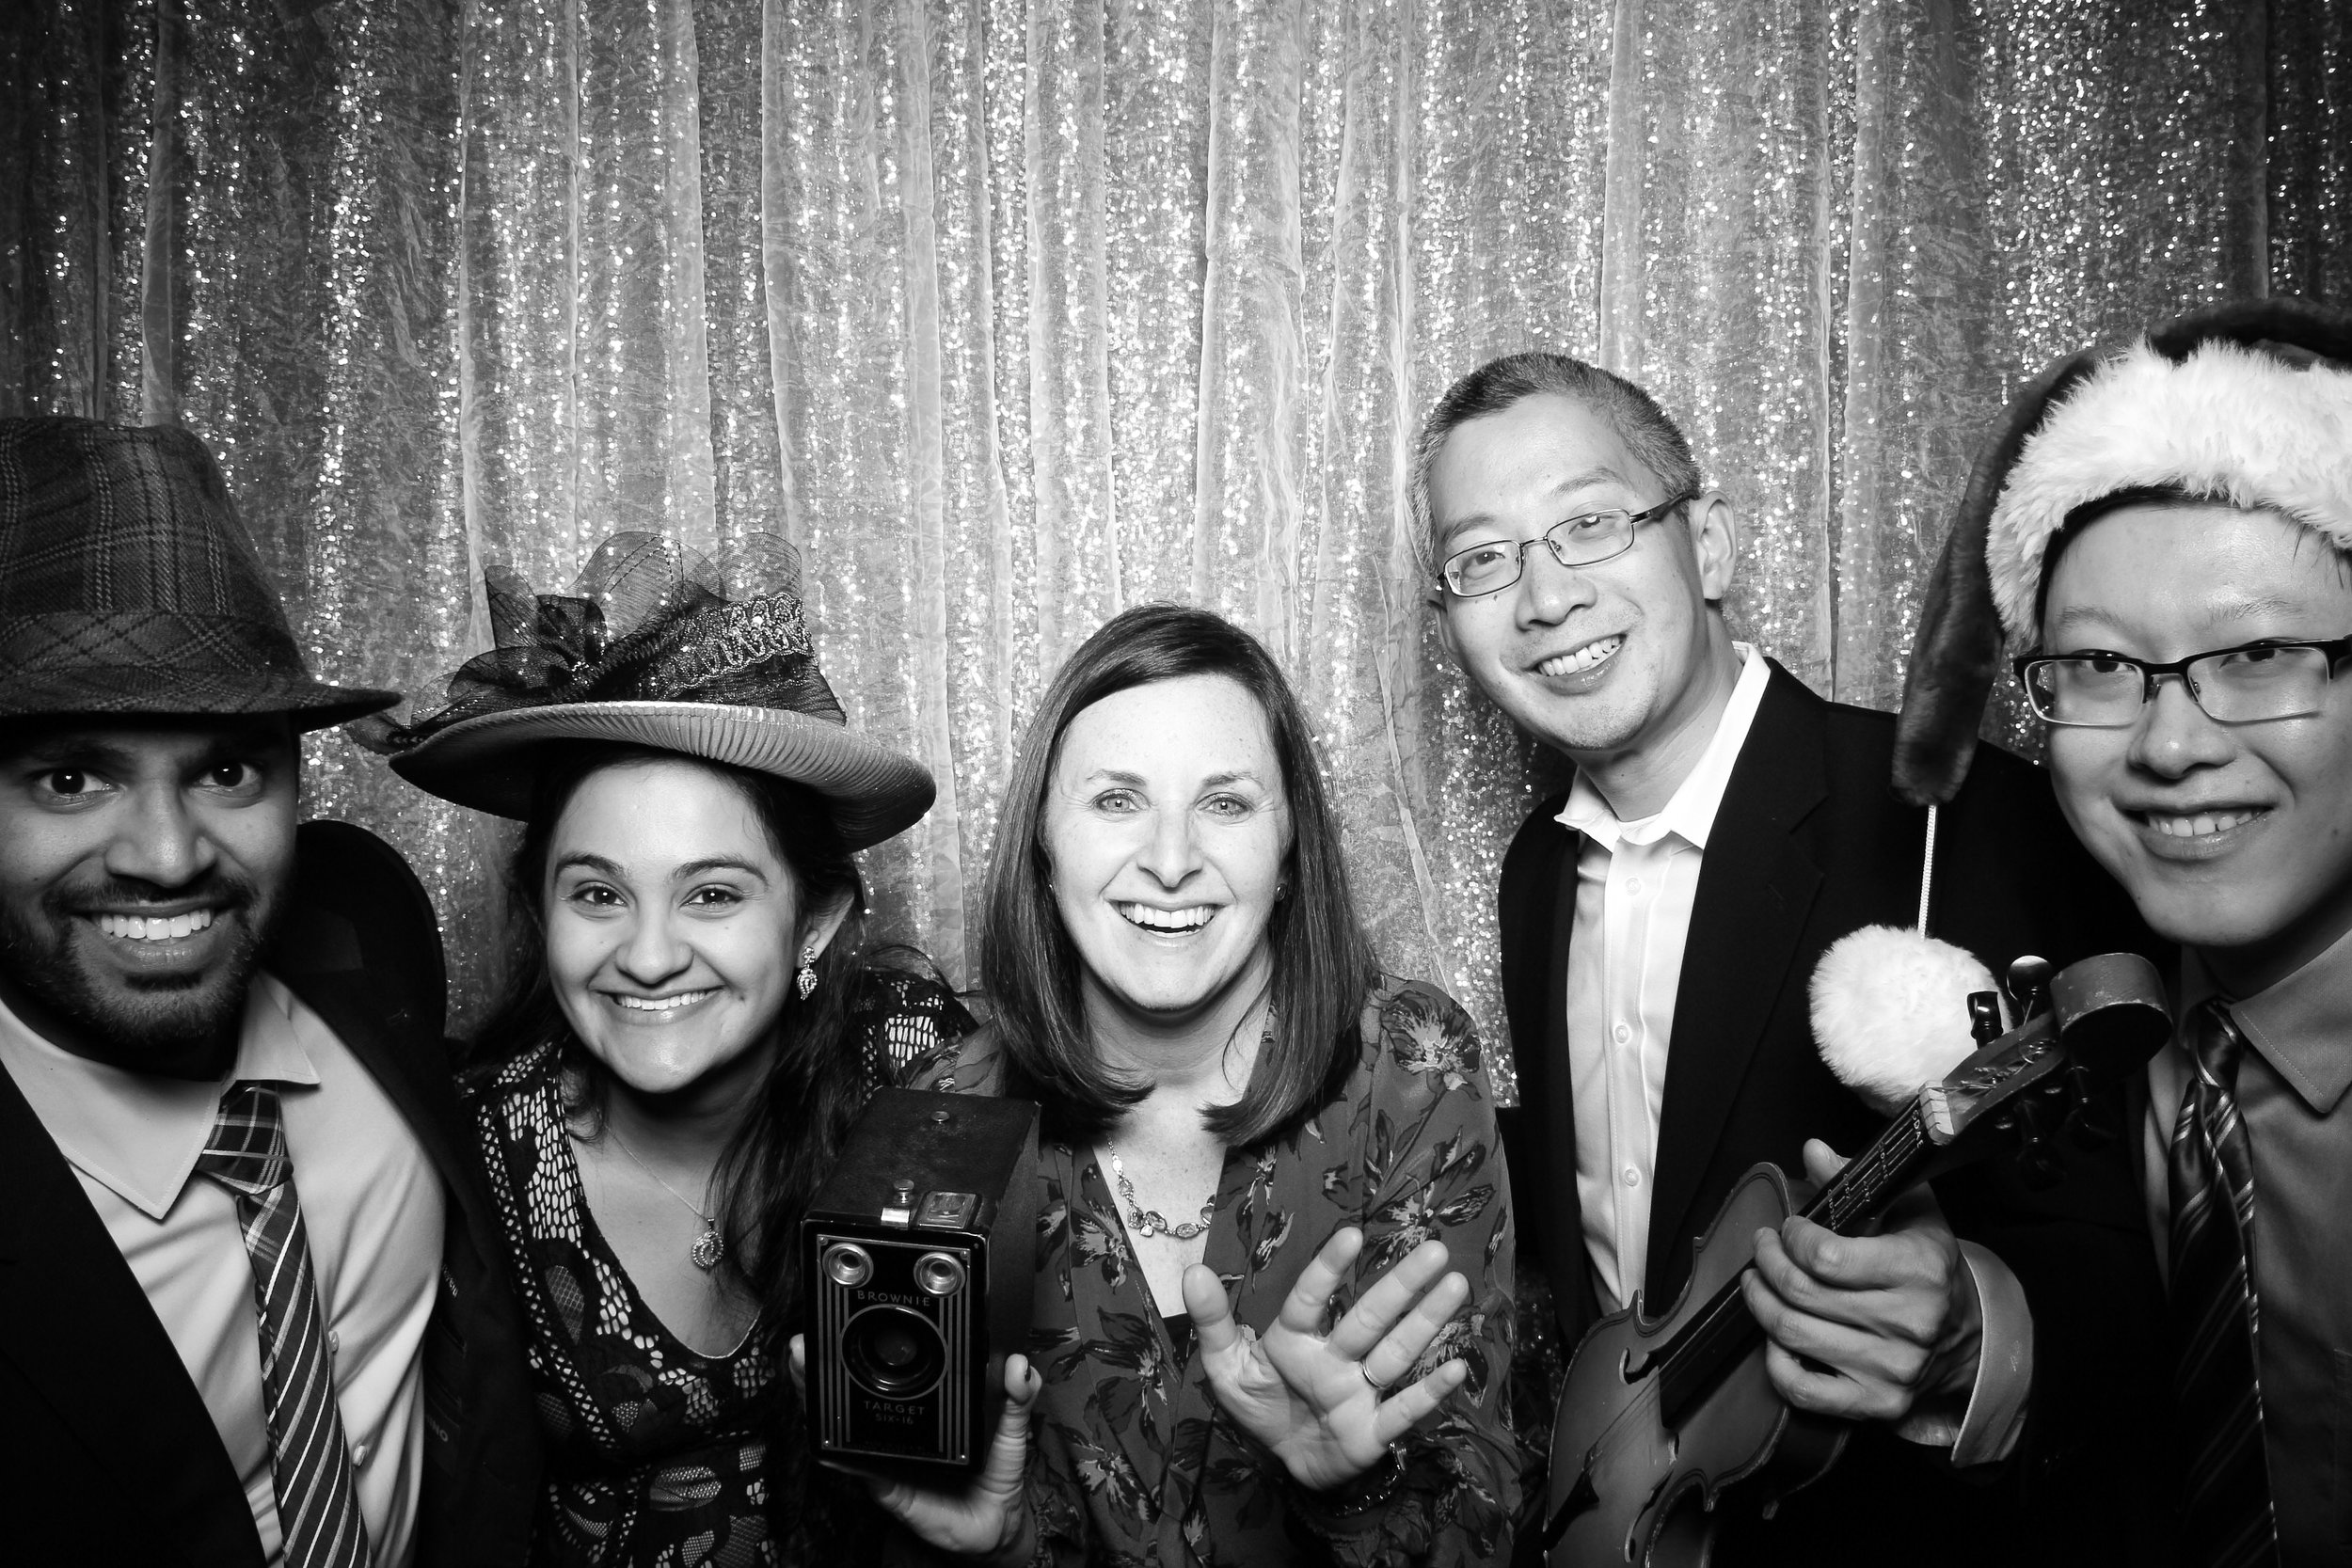 Chicago_Vintage_Photobooth_Montgomery_Club_Holiday_Party_04.jpg